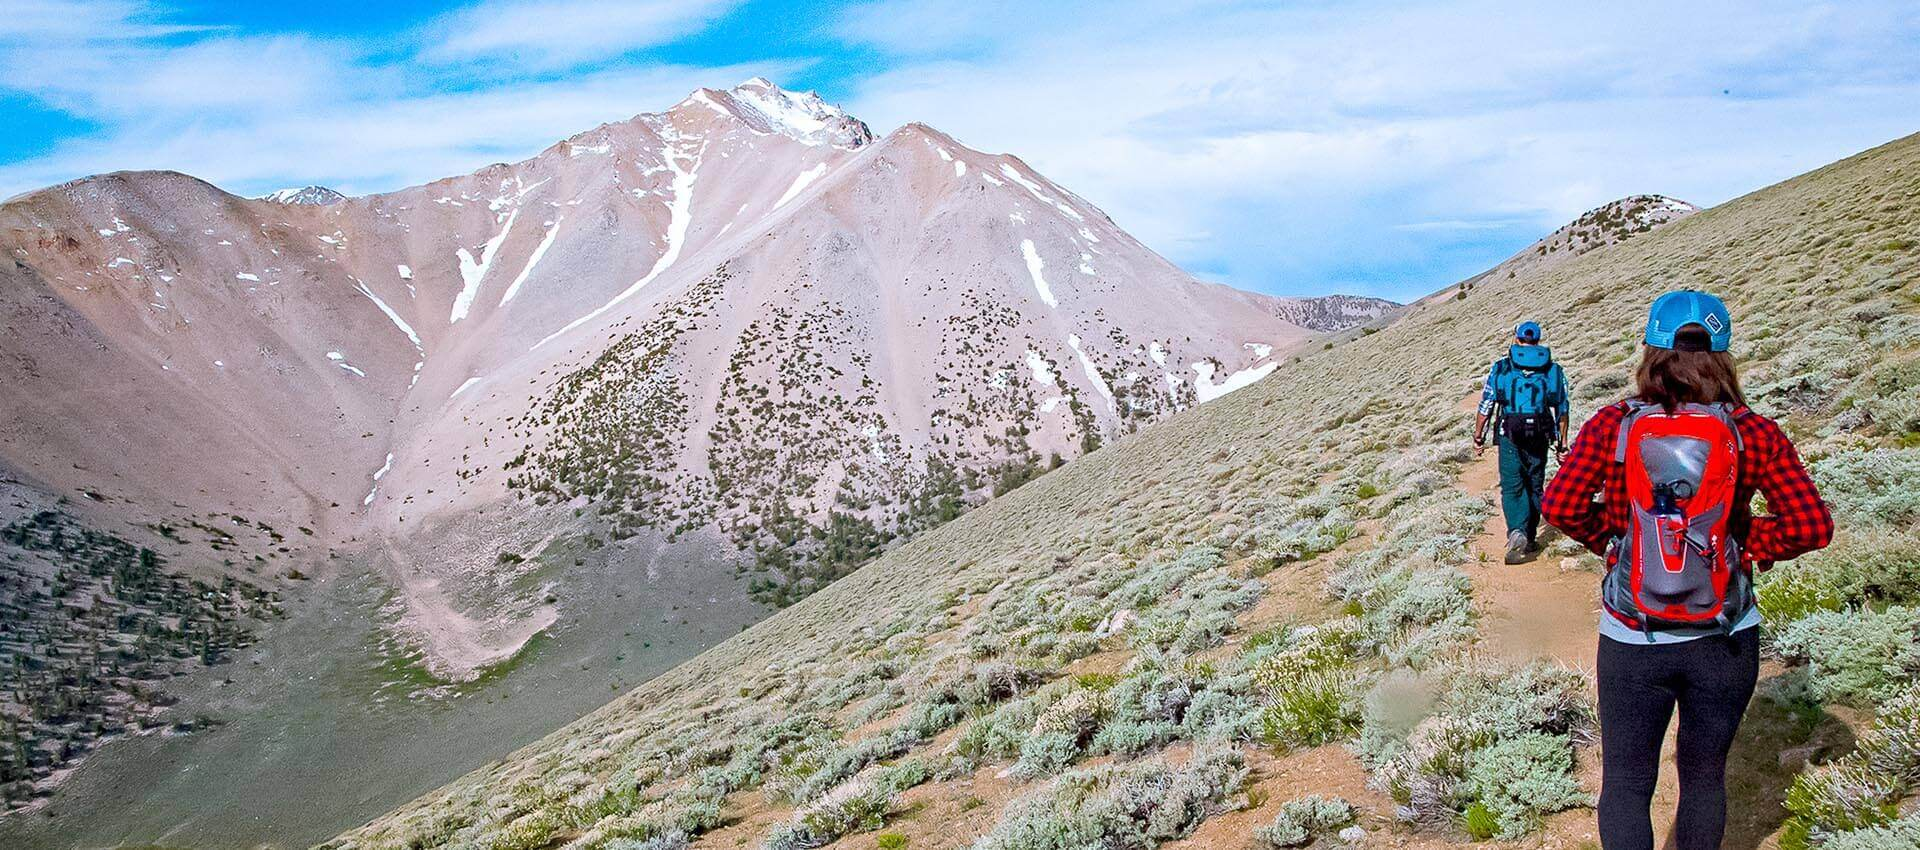 Hiking and Backpacking in Nevada